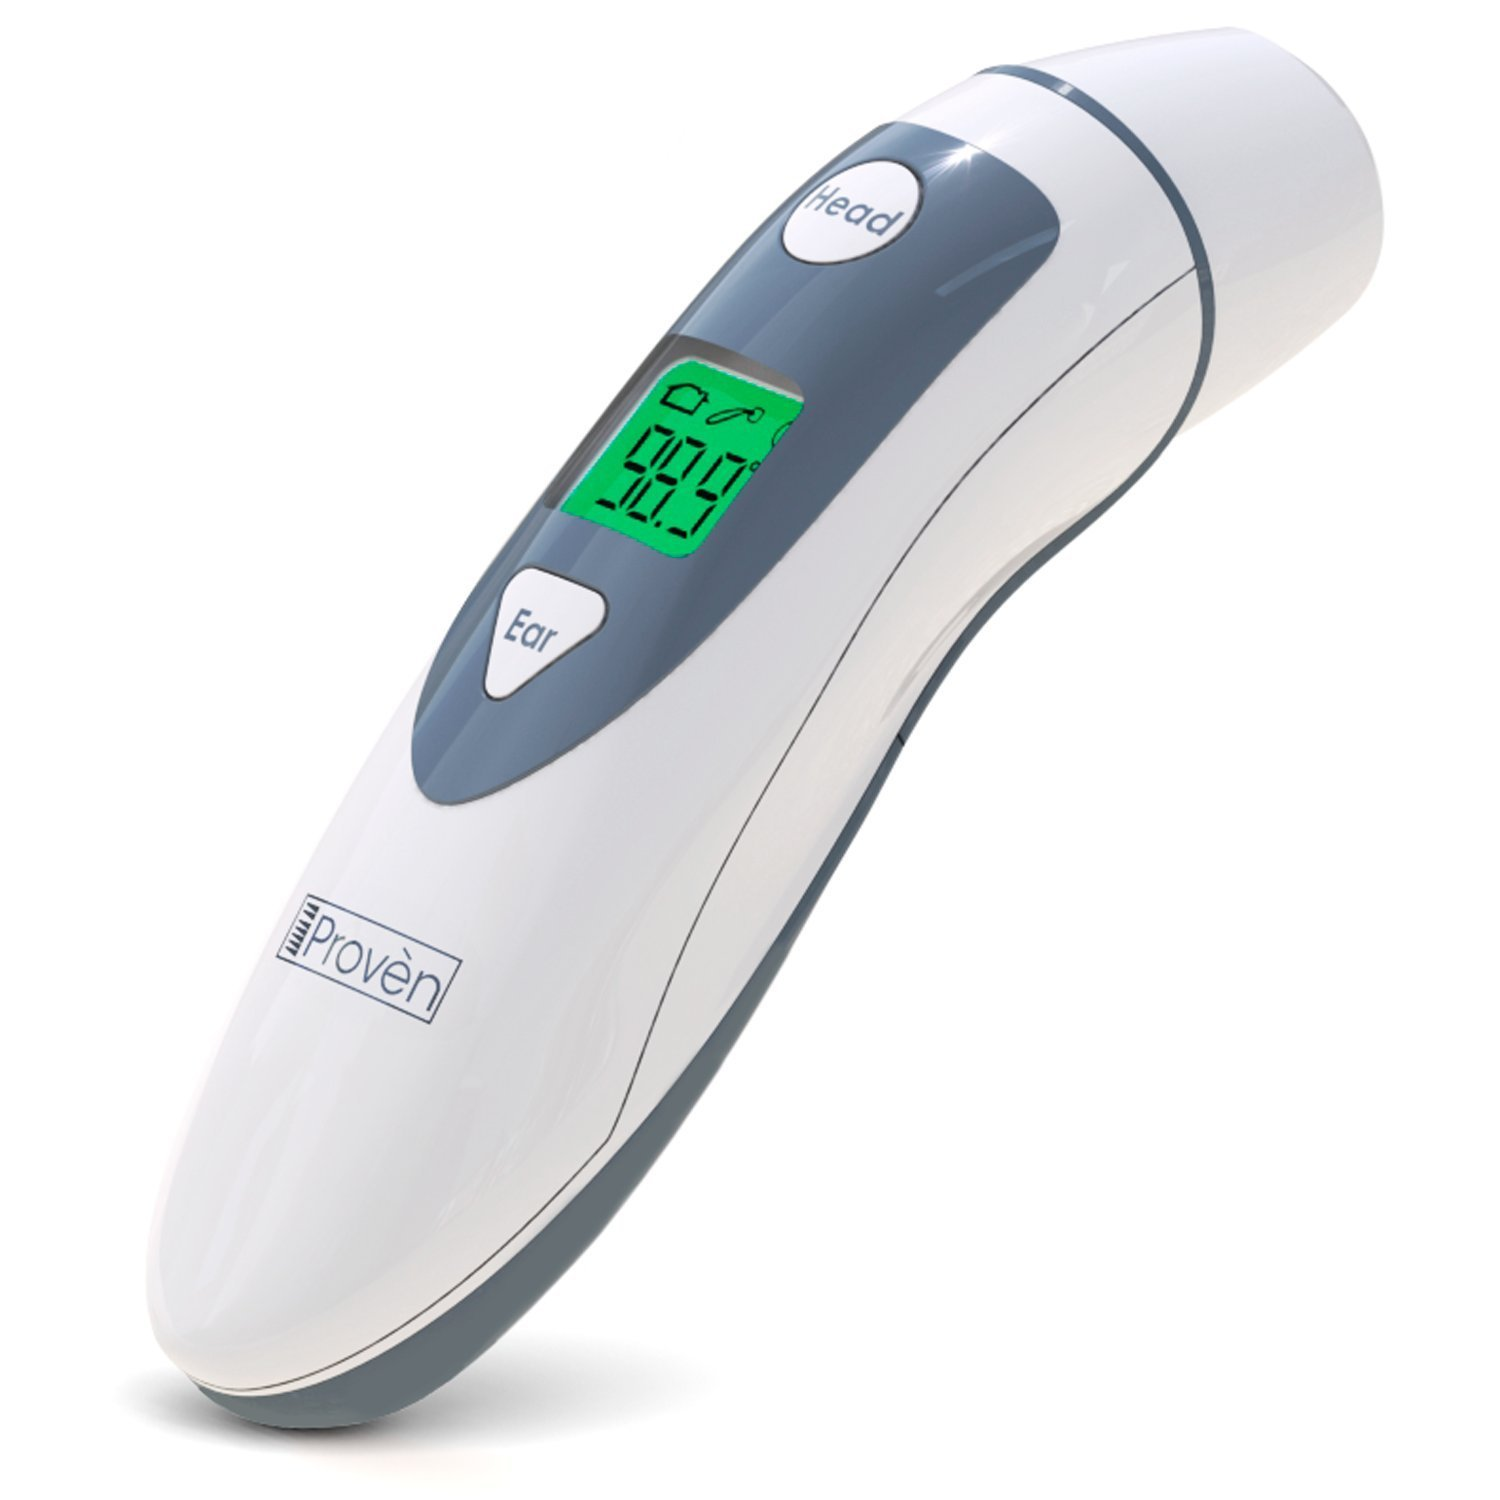 Iproven Forehead Thermometer DMT-489 Review - Thermometer ...